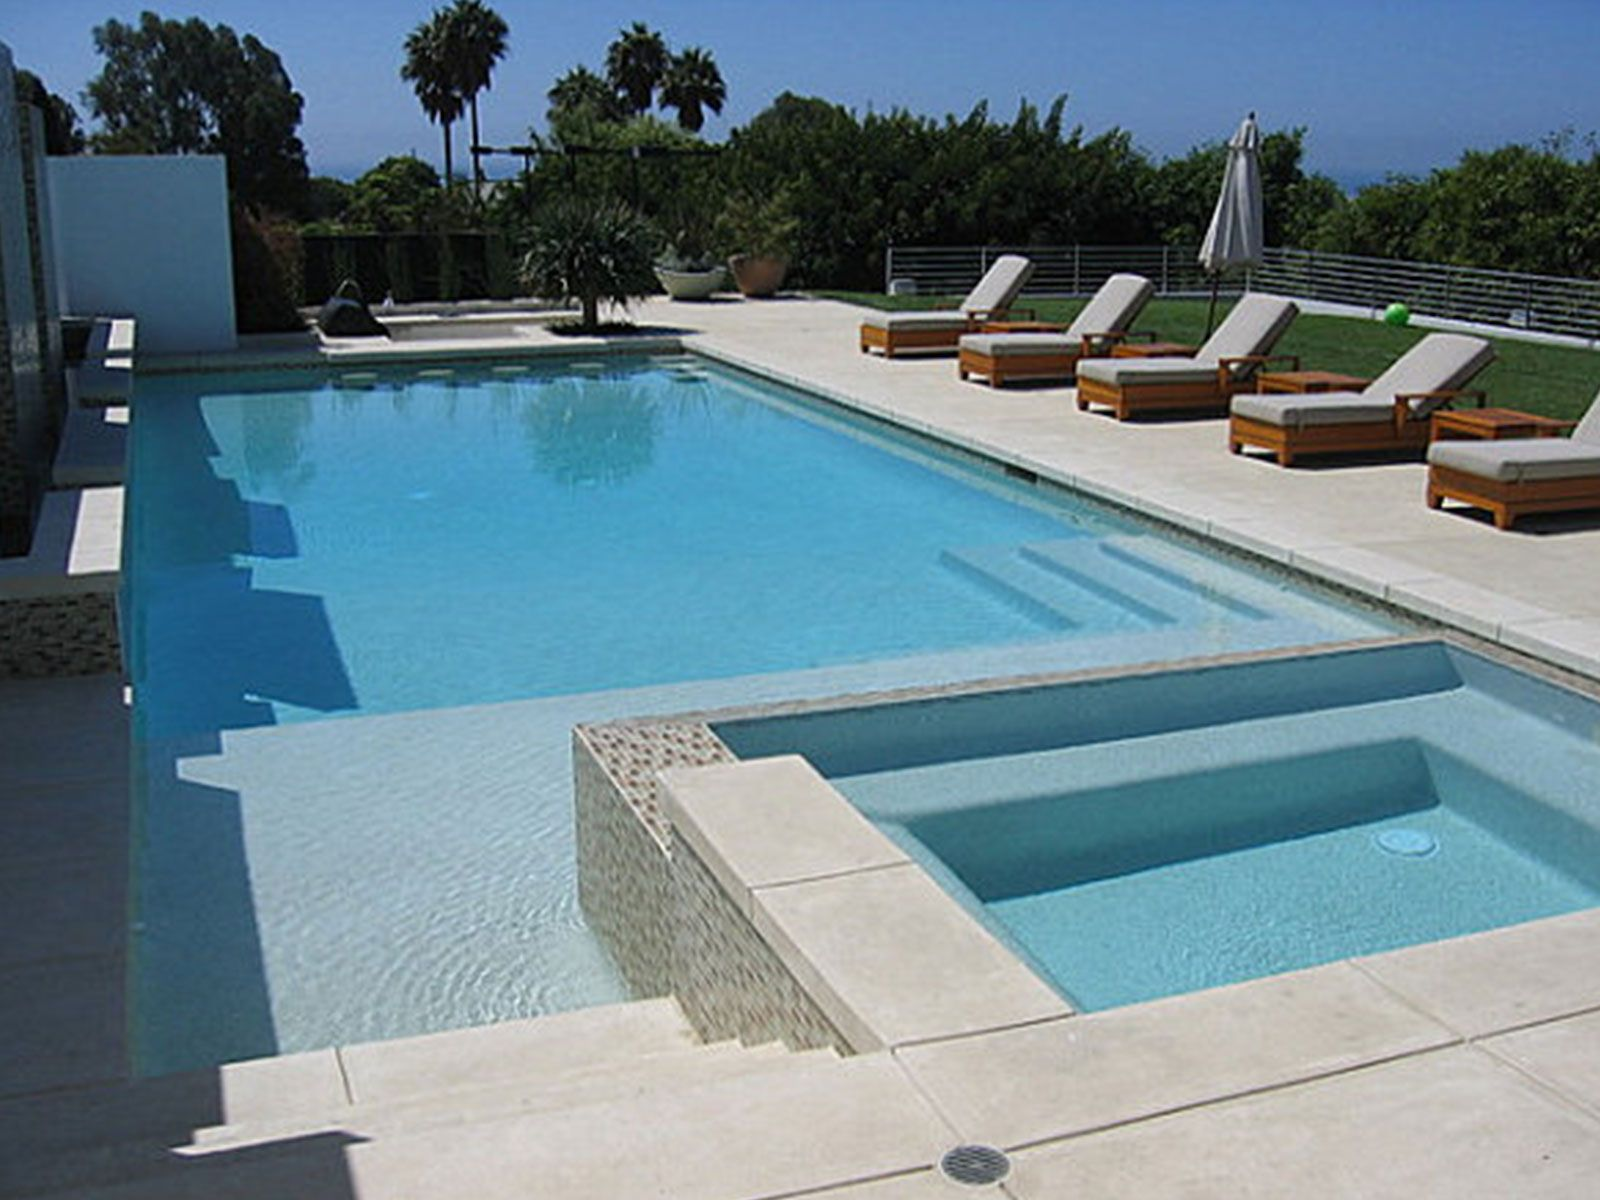 Simple swimming pool design image modern creative swimming for Large swimming pool designs